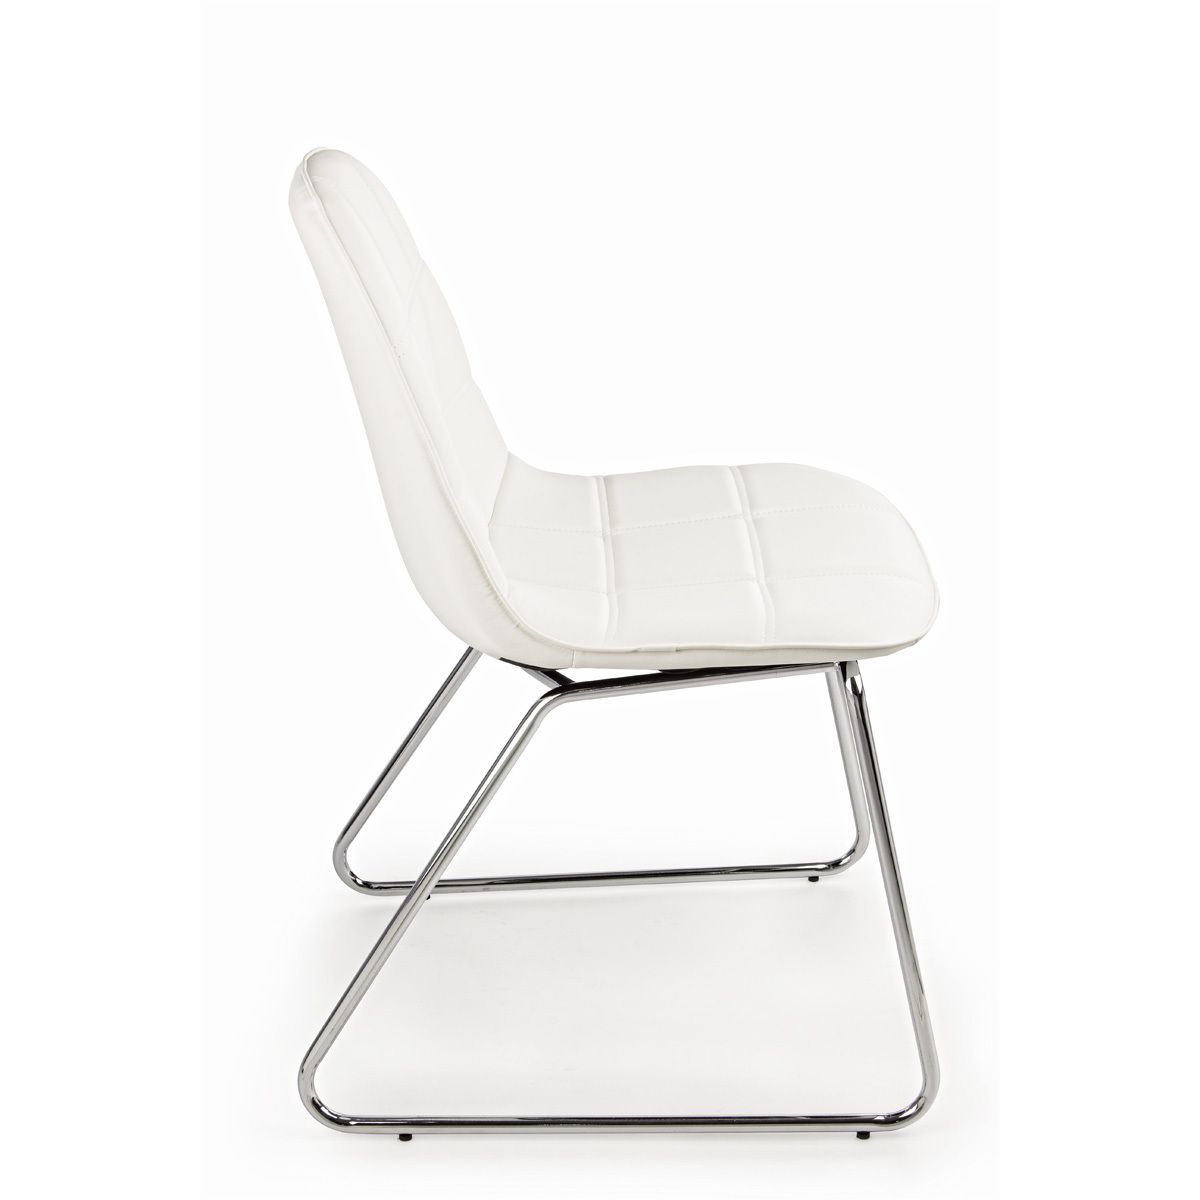 Photos 2: Bizzotto Chair in metal and eco-leather - white 0731662